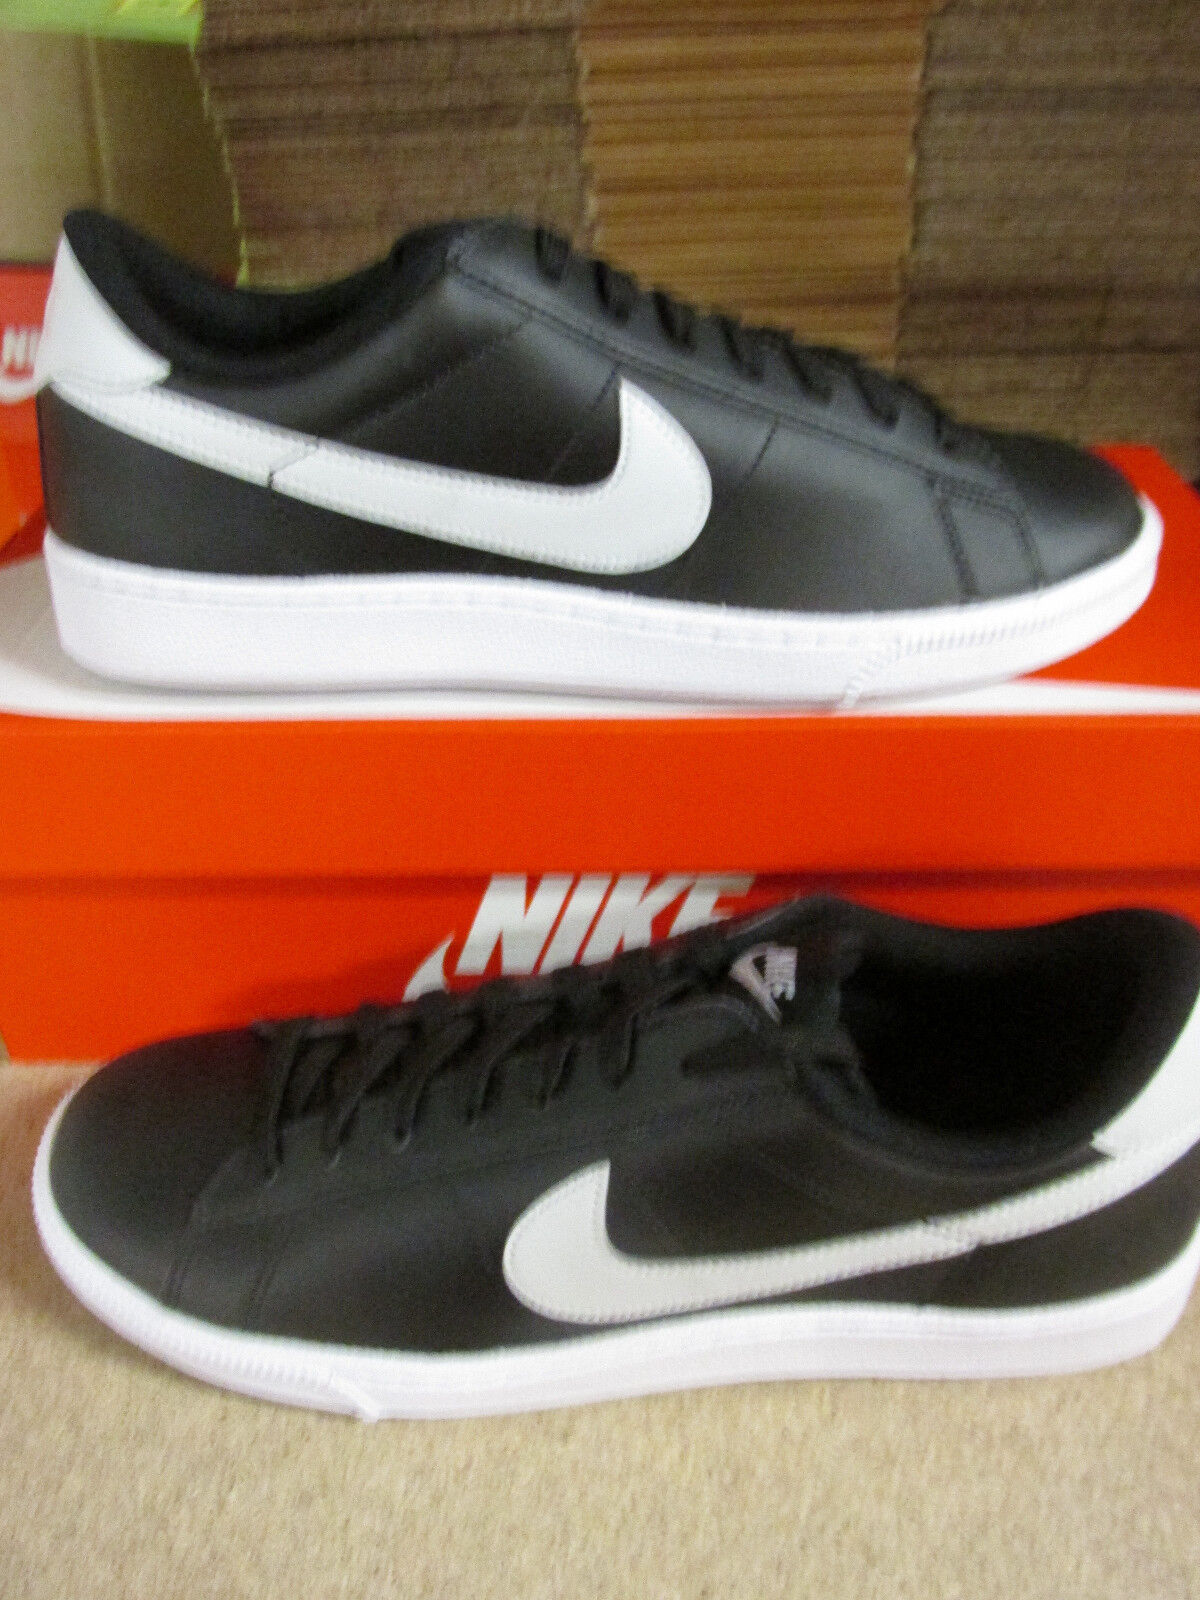 nike tennis classic CS mens trainers 683613 010 sneakers shoes